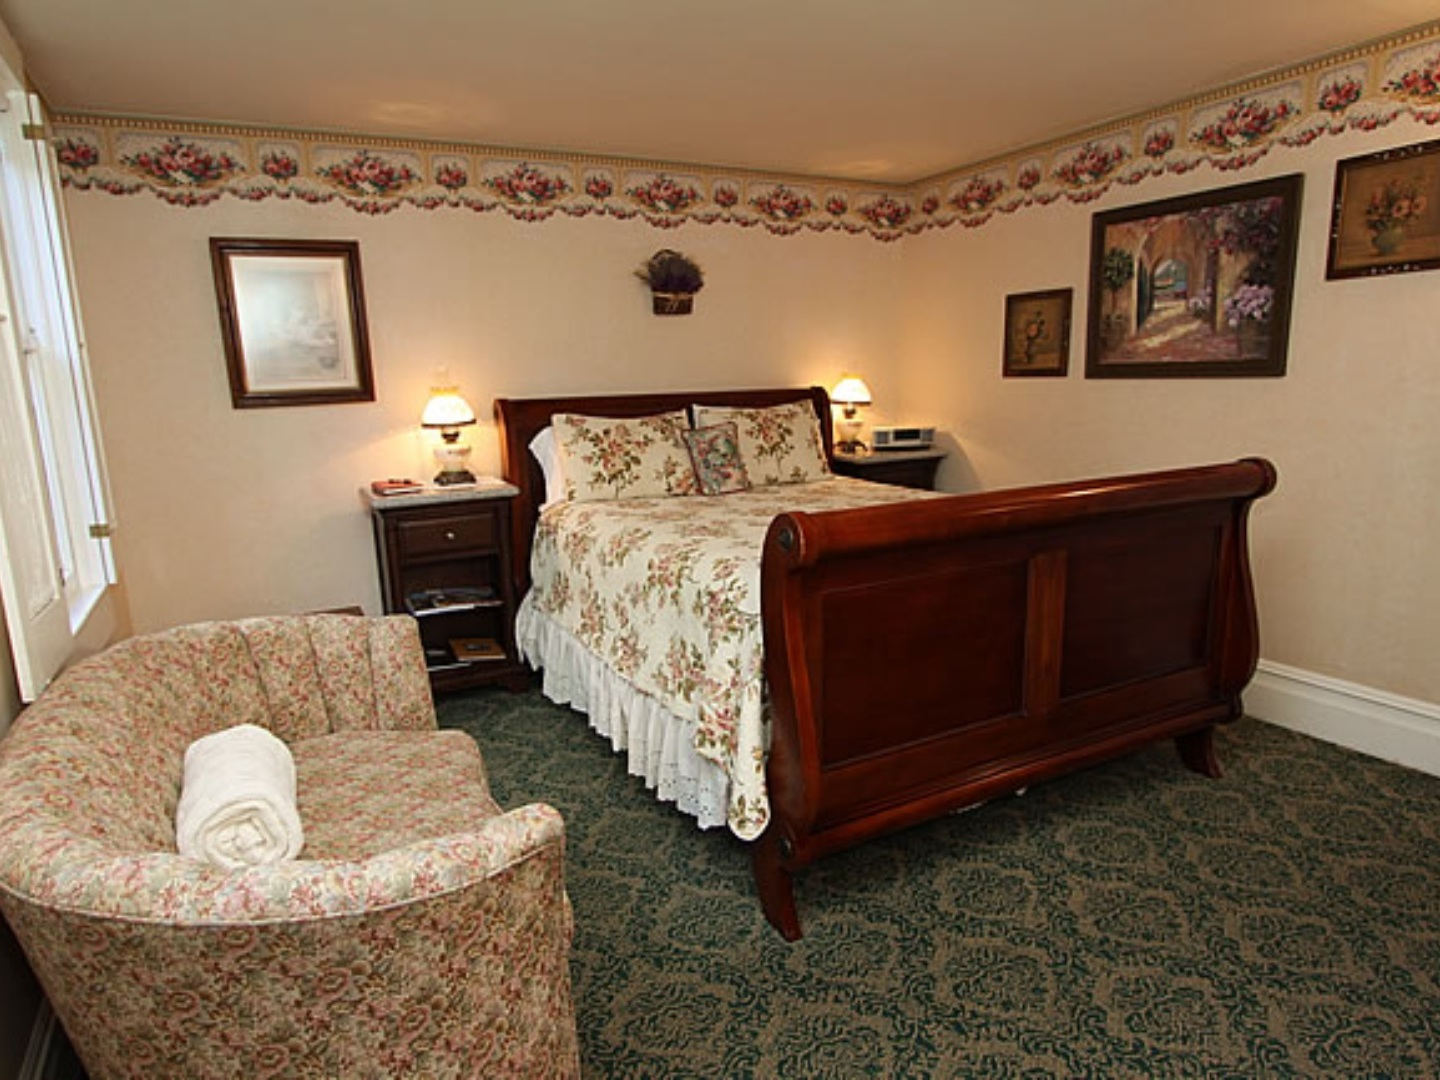 A bedroom with a bed and a couch in a living room at Raford Inn.